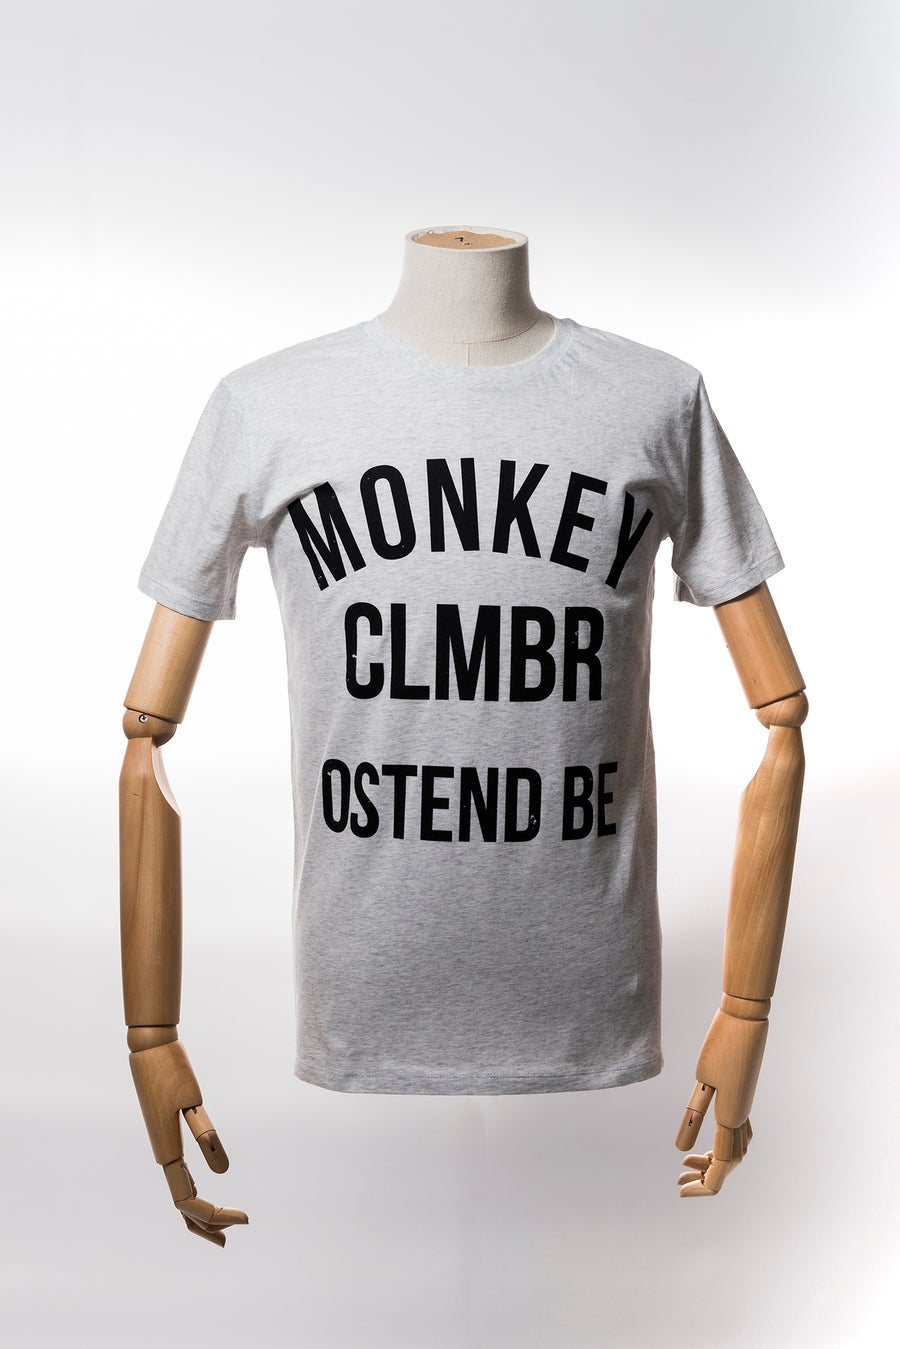 Image of Monkey Climber Ostend shirt I Heather Ash